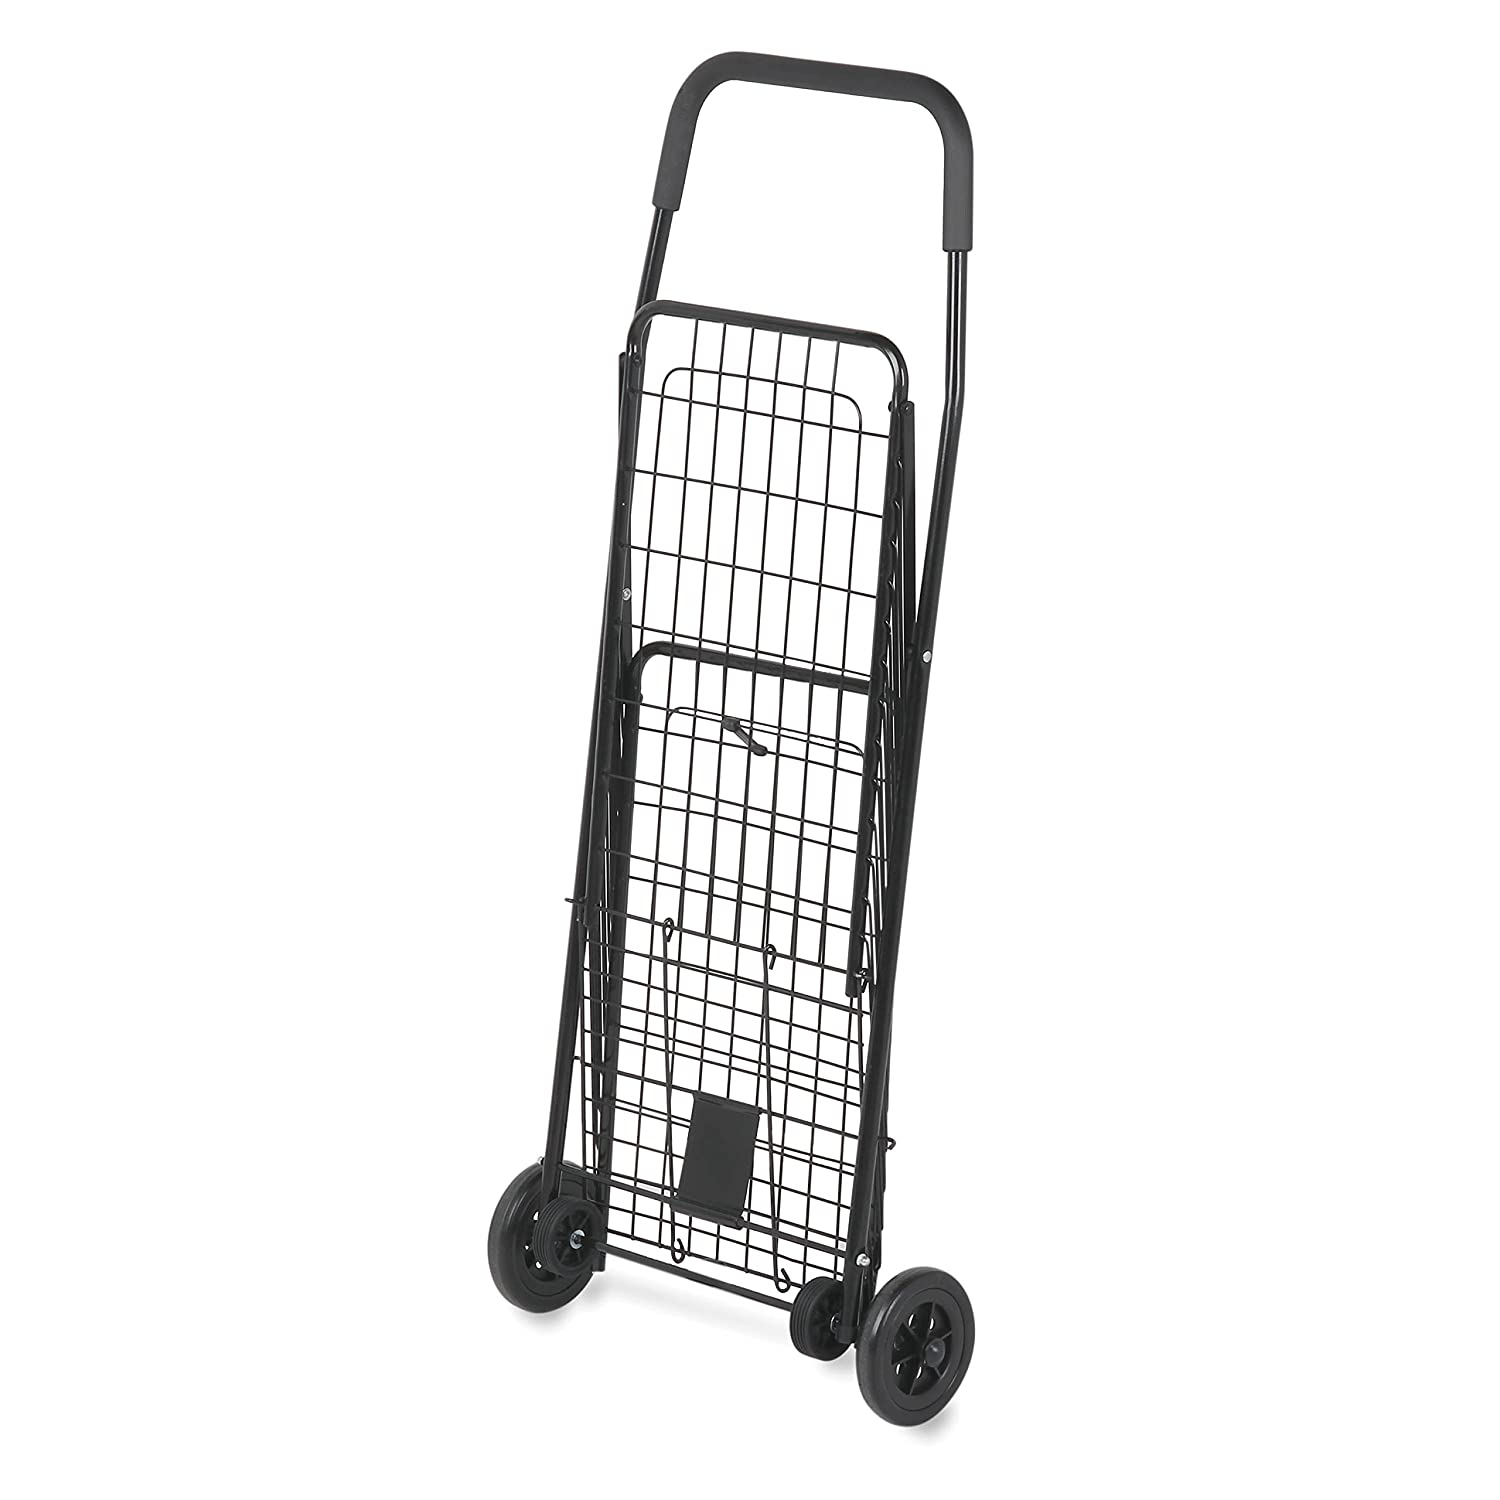 Honey-Can-Do RA49035 CRT-01511 4-Wheel Utility Cart, Medium, Multicolor